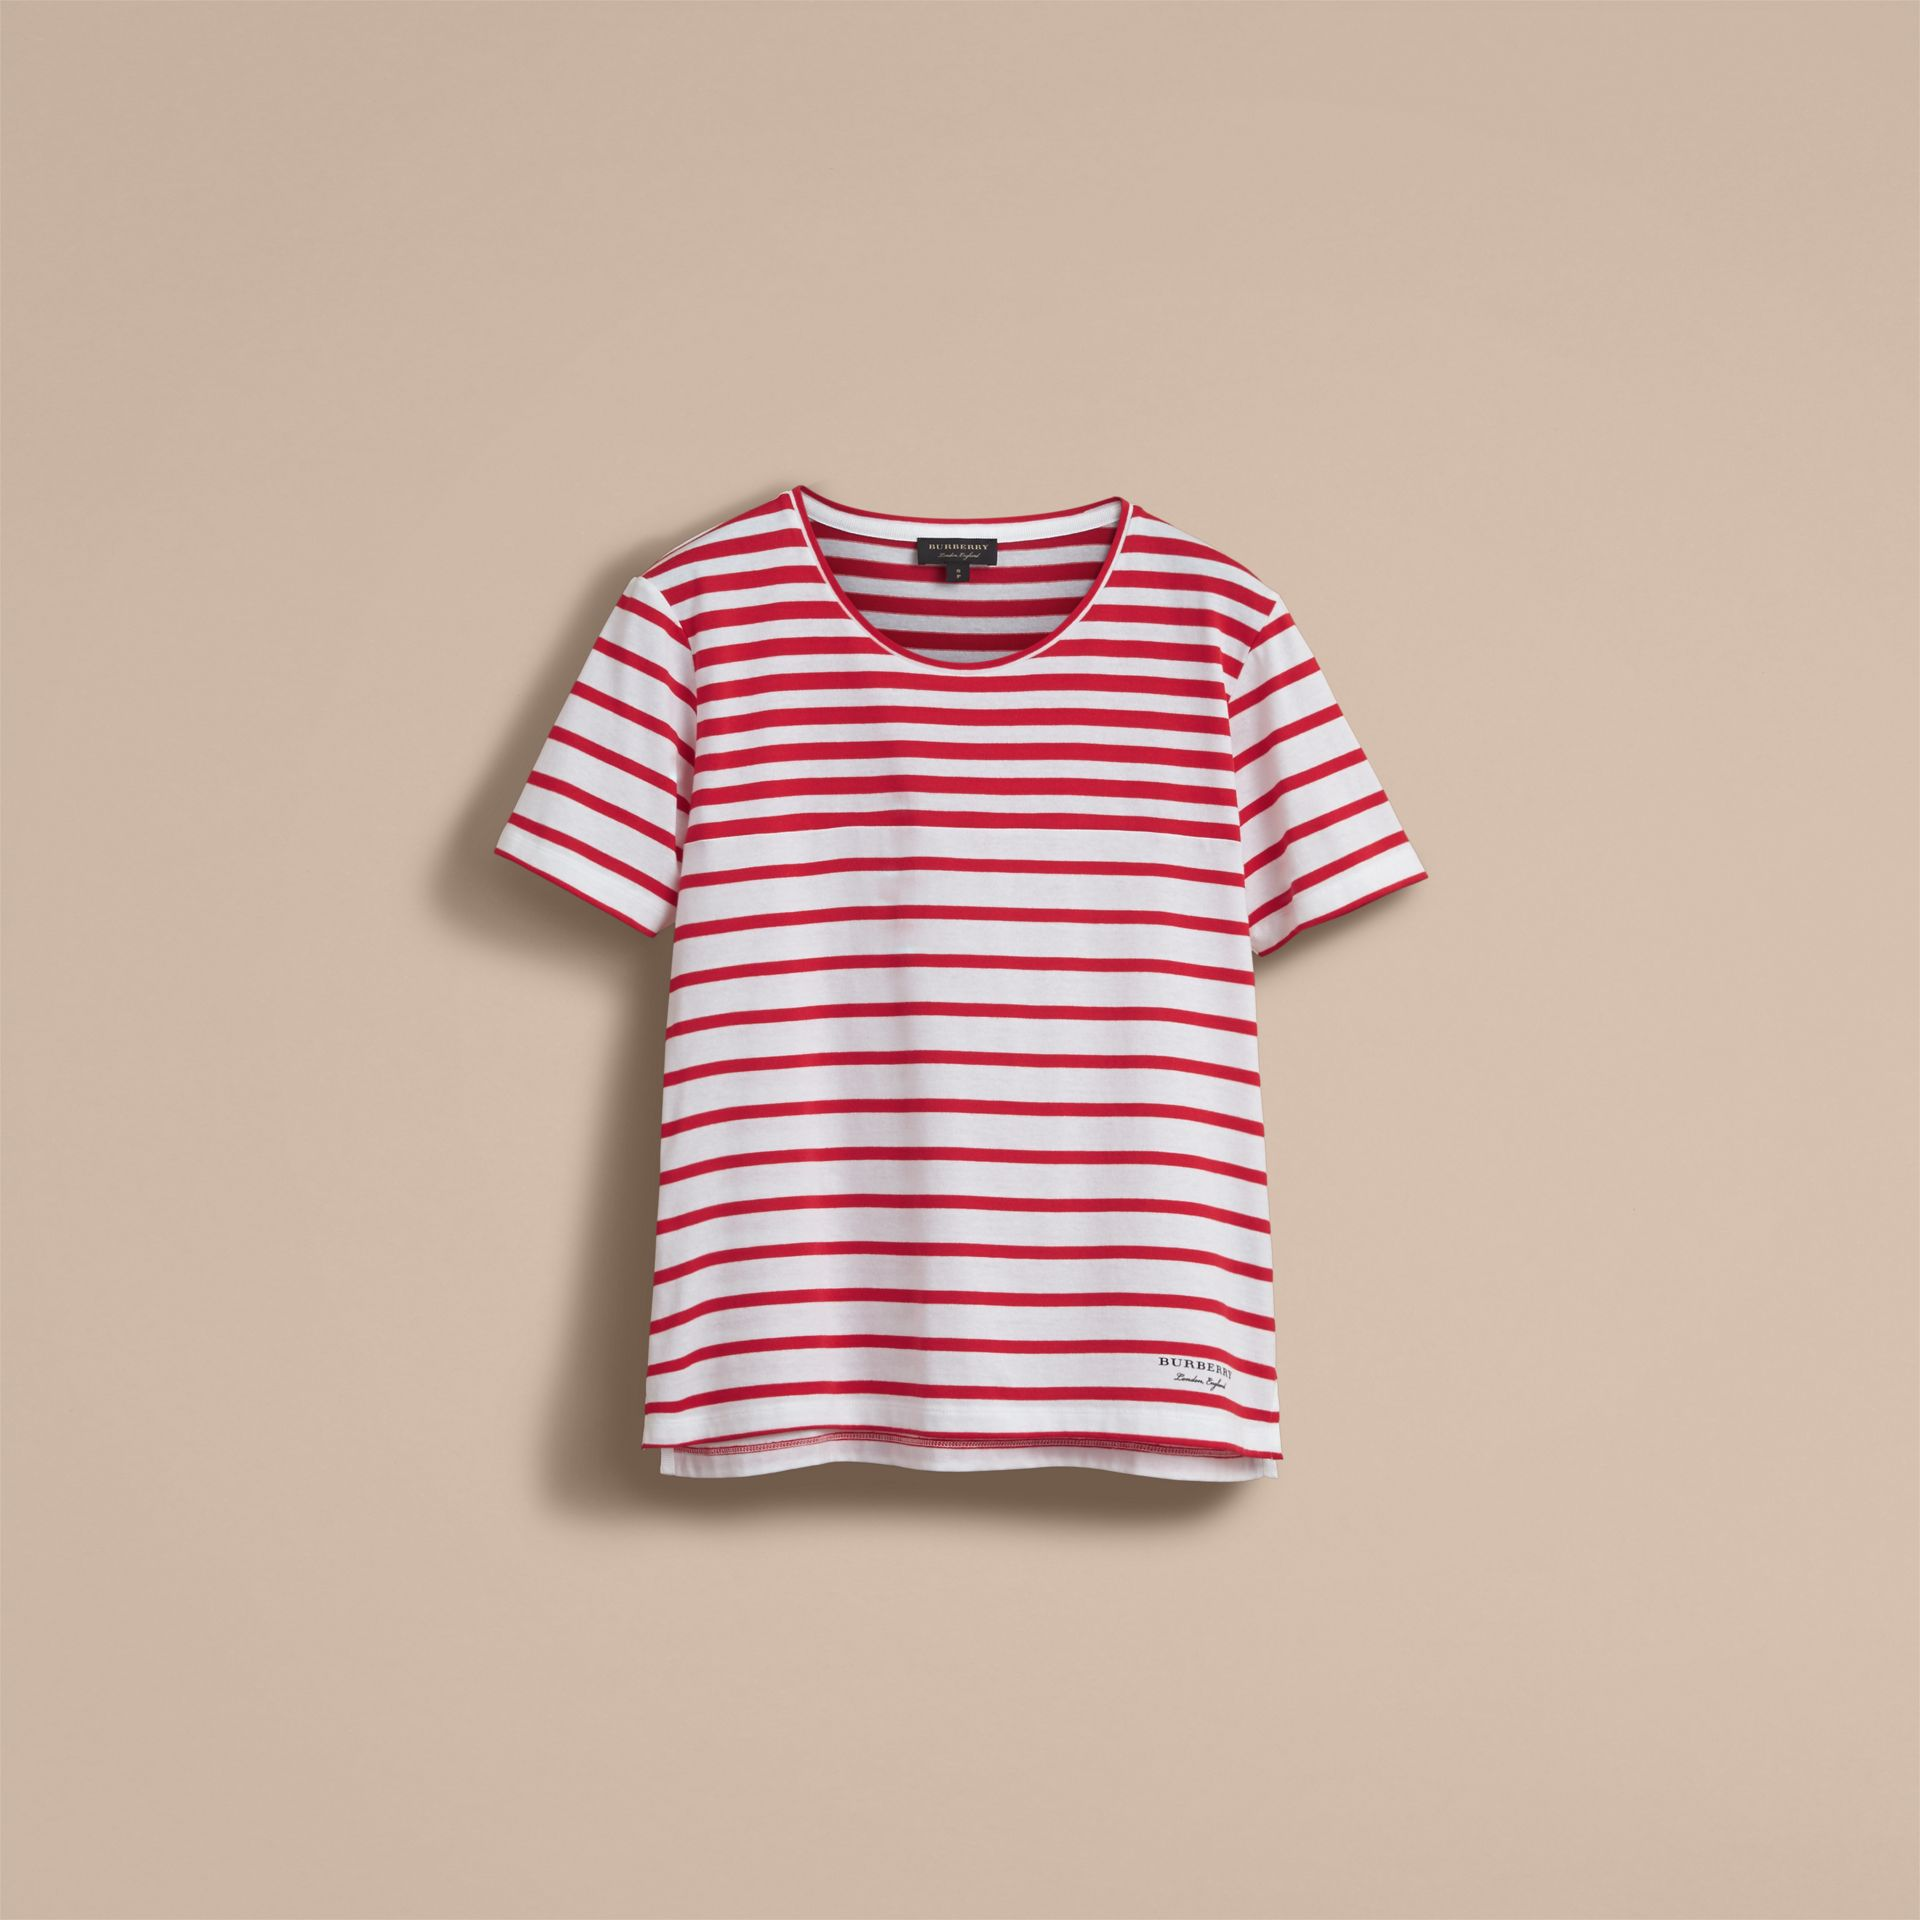 Breton Stripe Cotton T-shirt in Military Red/white - Women | Burberry - gallery image 4